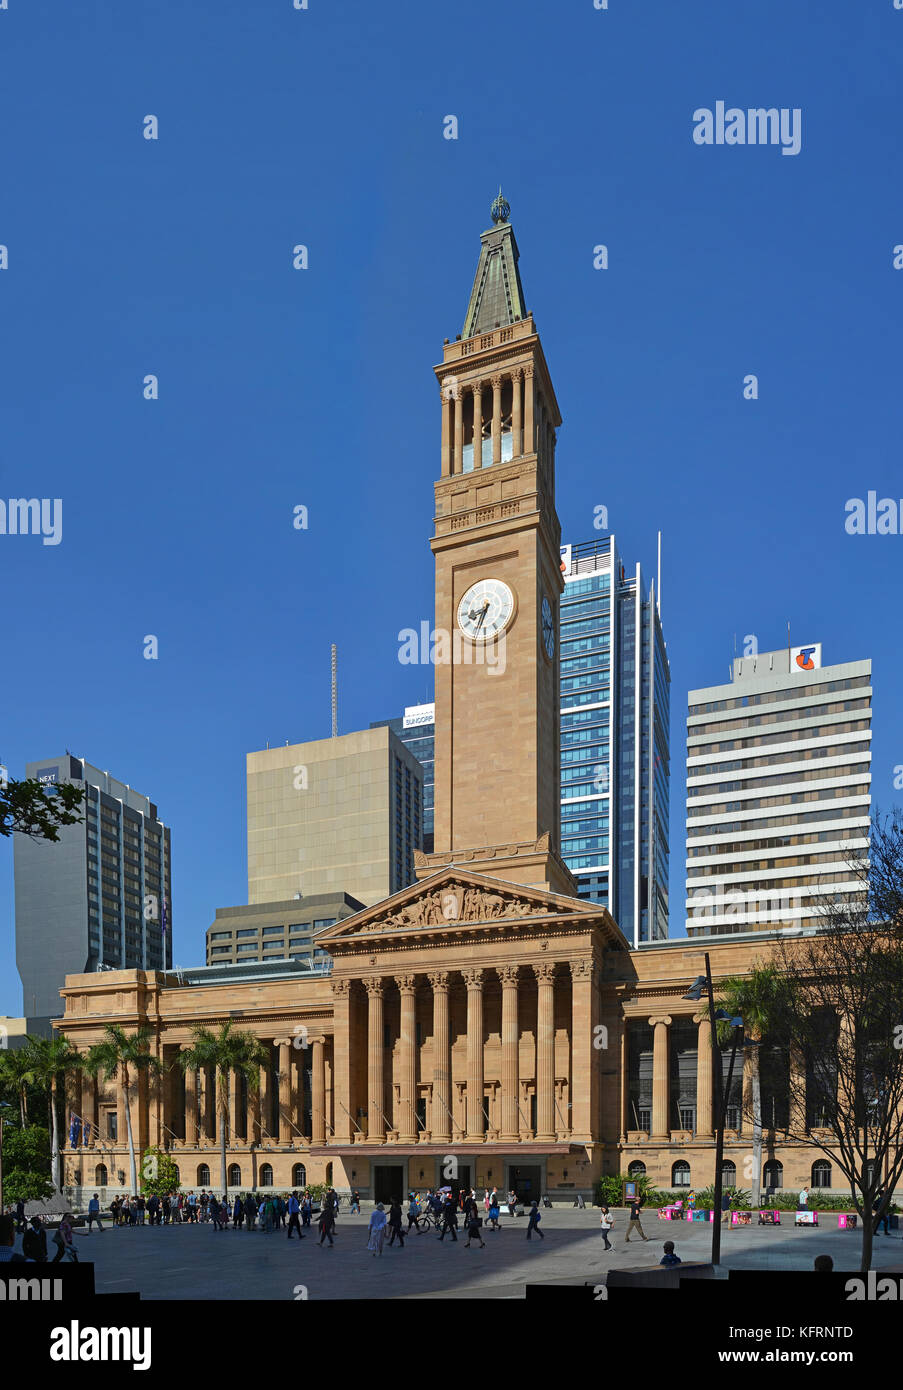 Brisbane, Australia - September 19, 2017: Brisbane City Hall, Tower & Square Vertical Panorama, Queensland Australia - Stock Image